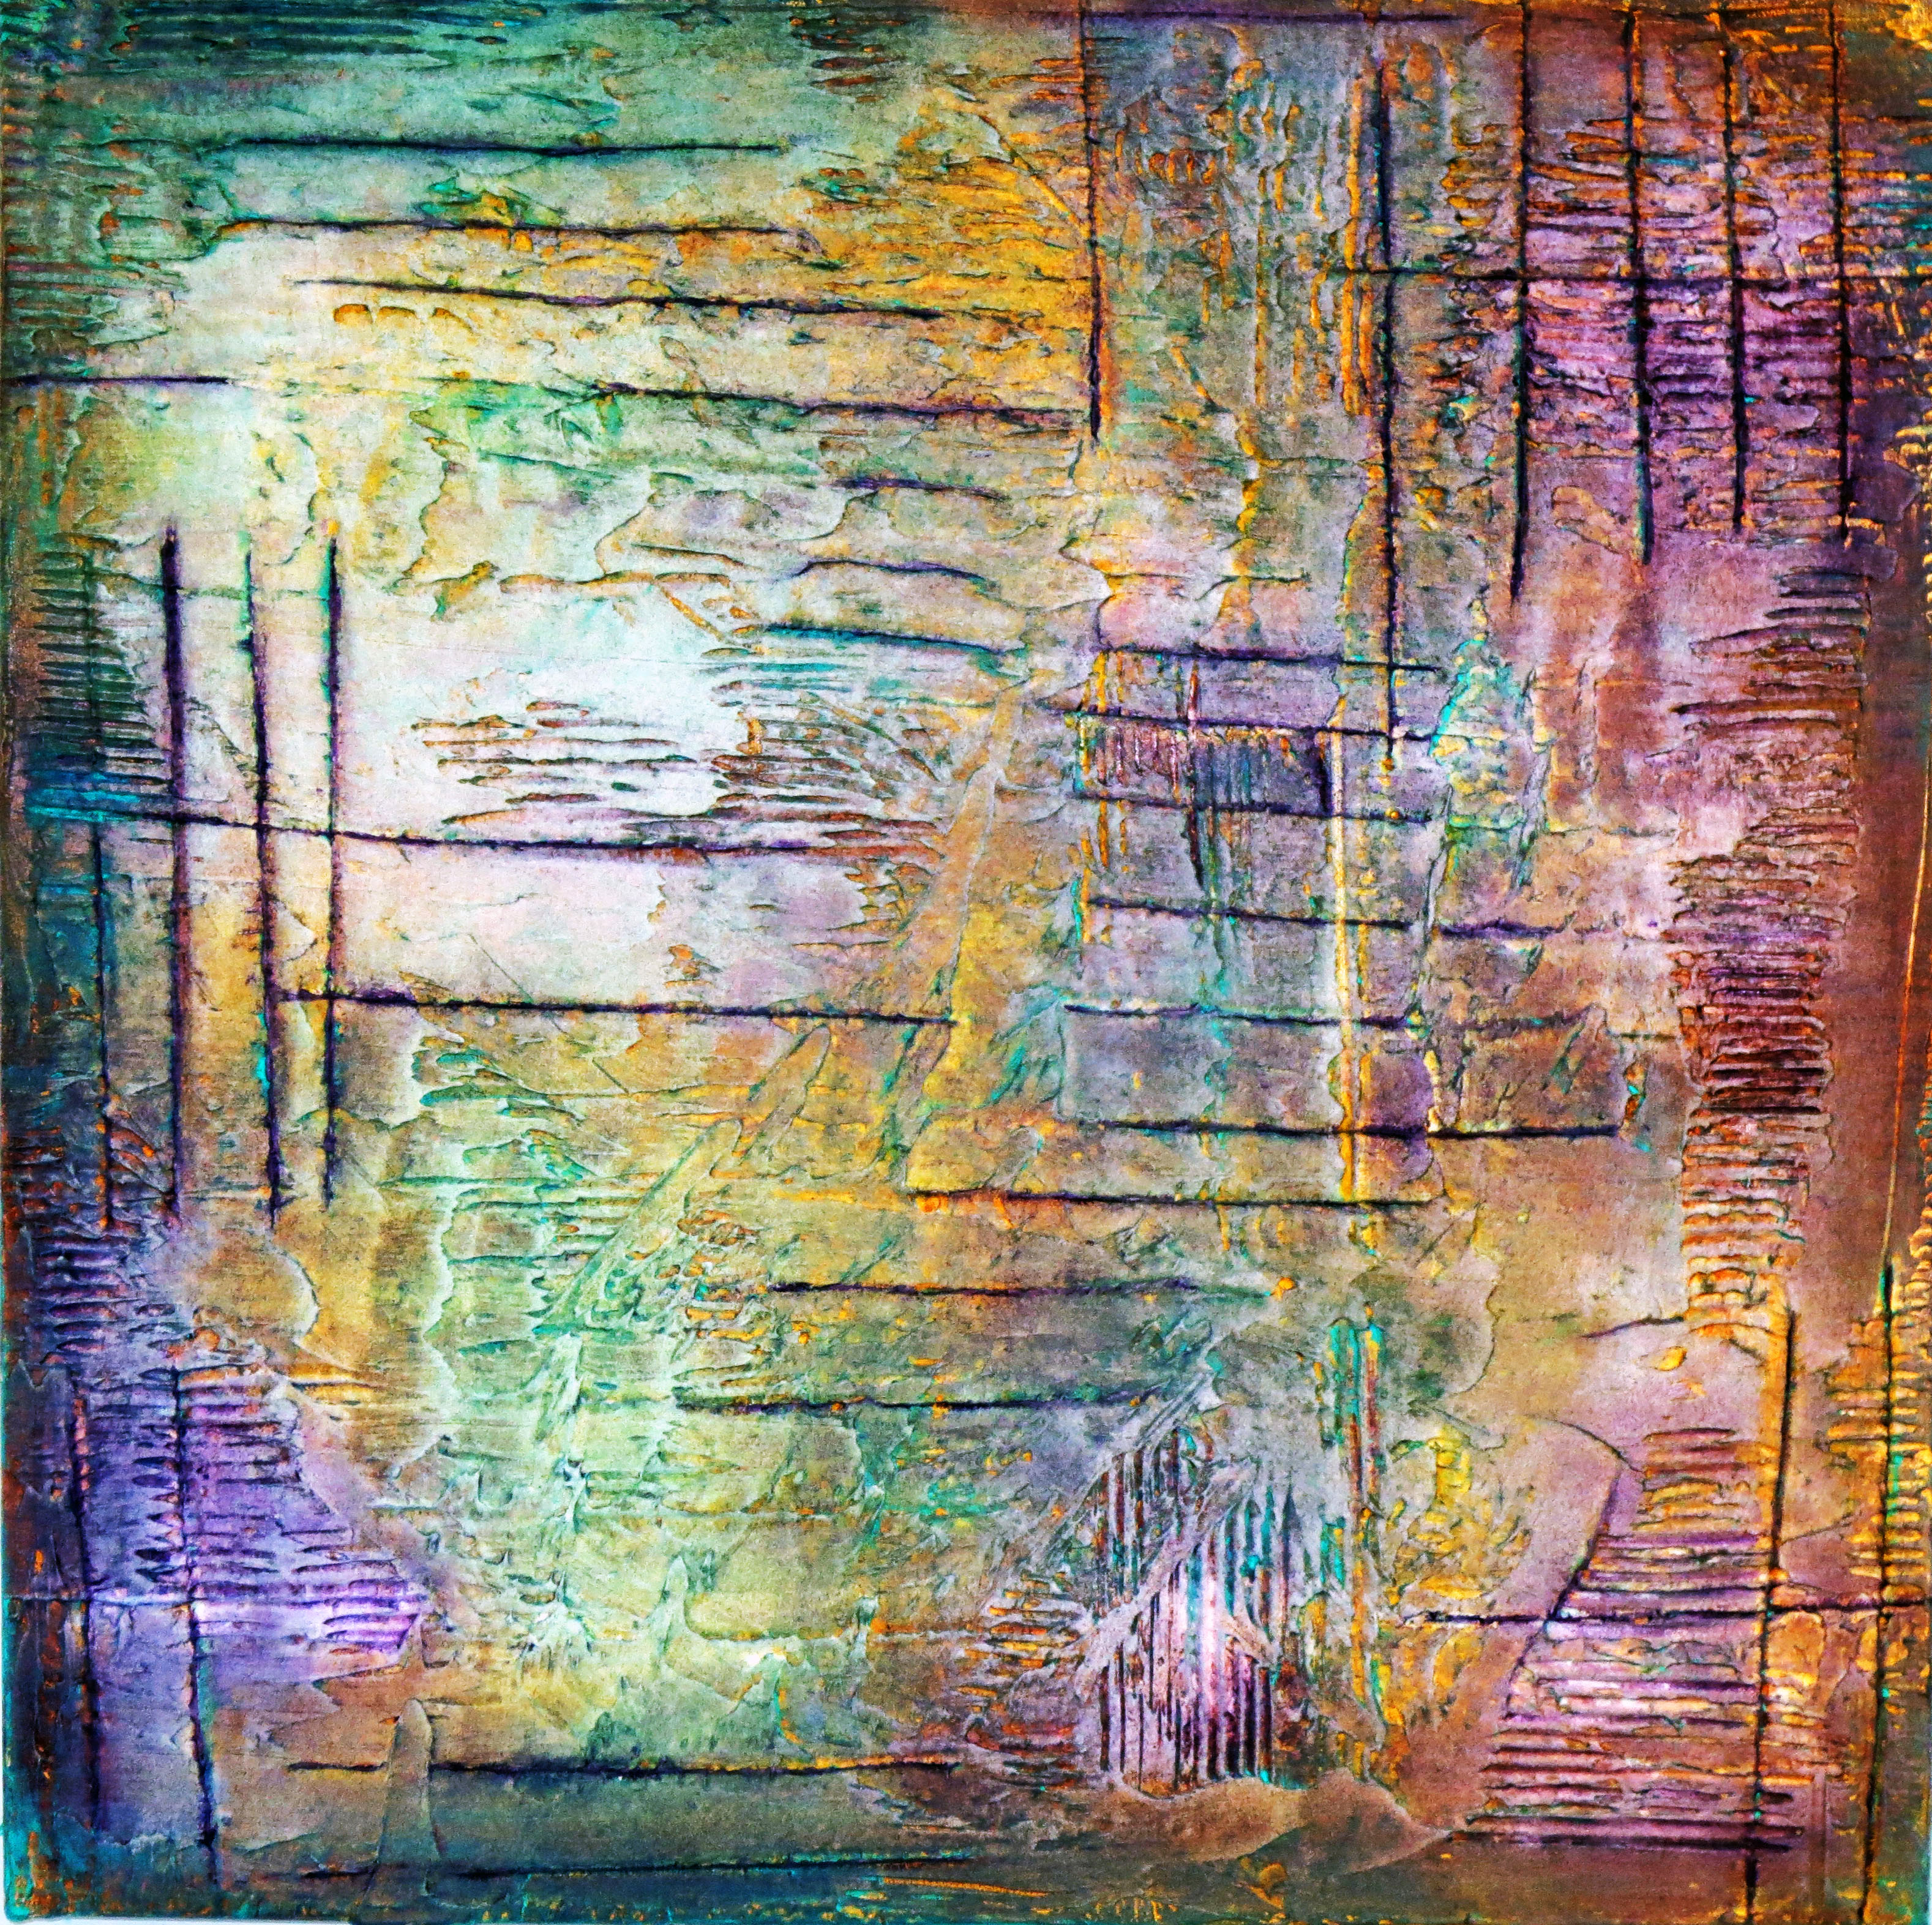 mixed media art Anyone can create beautiful mixed media art decoart's media program includes products formulated to work seamlessly together to create amazing mixed media art.